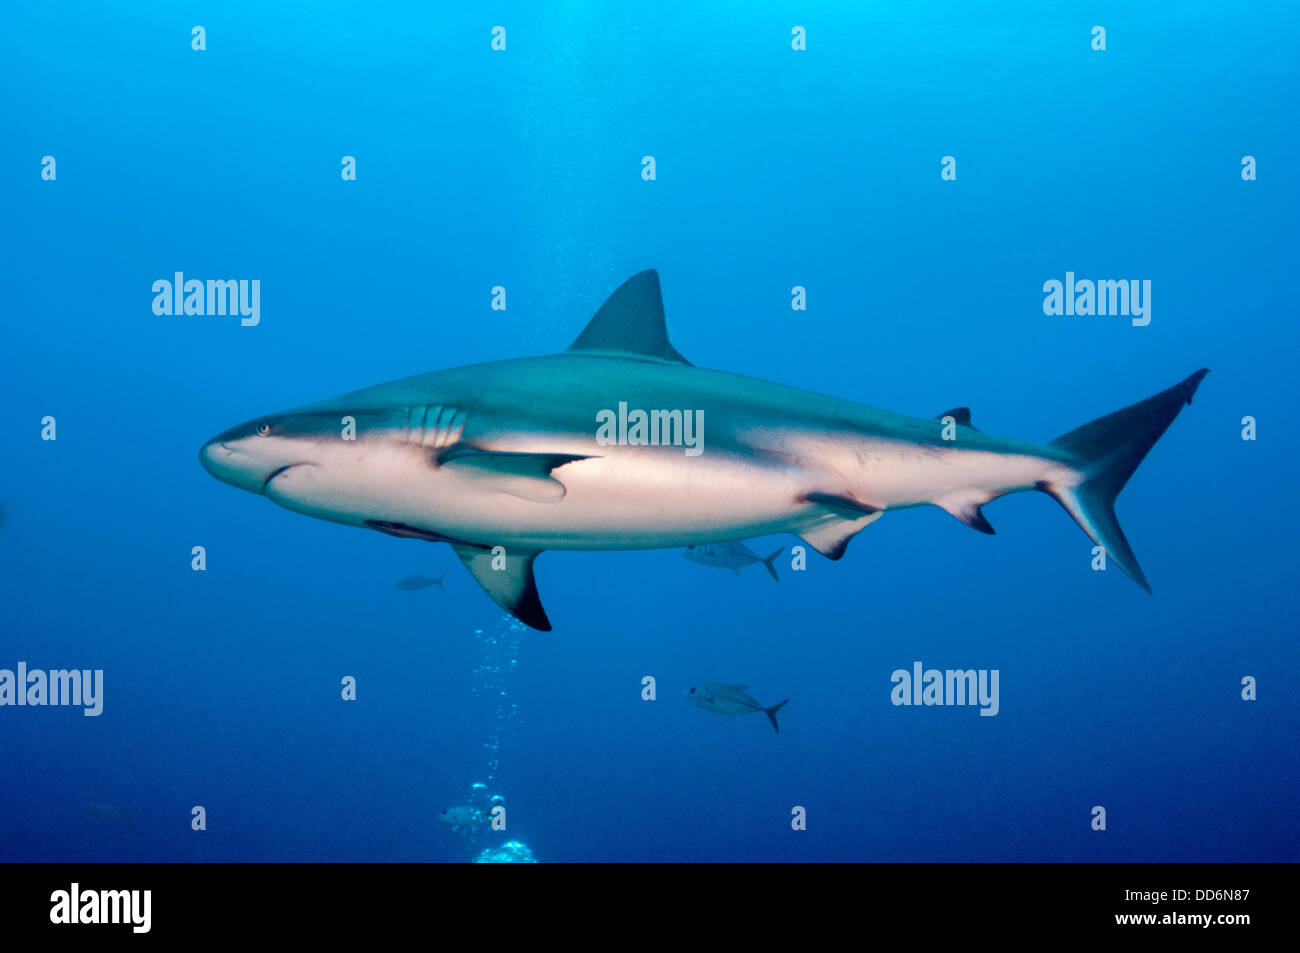 A Reef Shark, Carcharhinus perezii, swims through the water column on a reef near the island of Roatan, Honduras Stock Photo